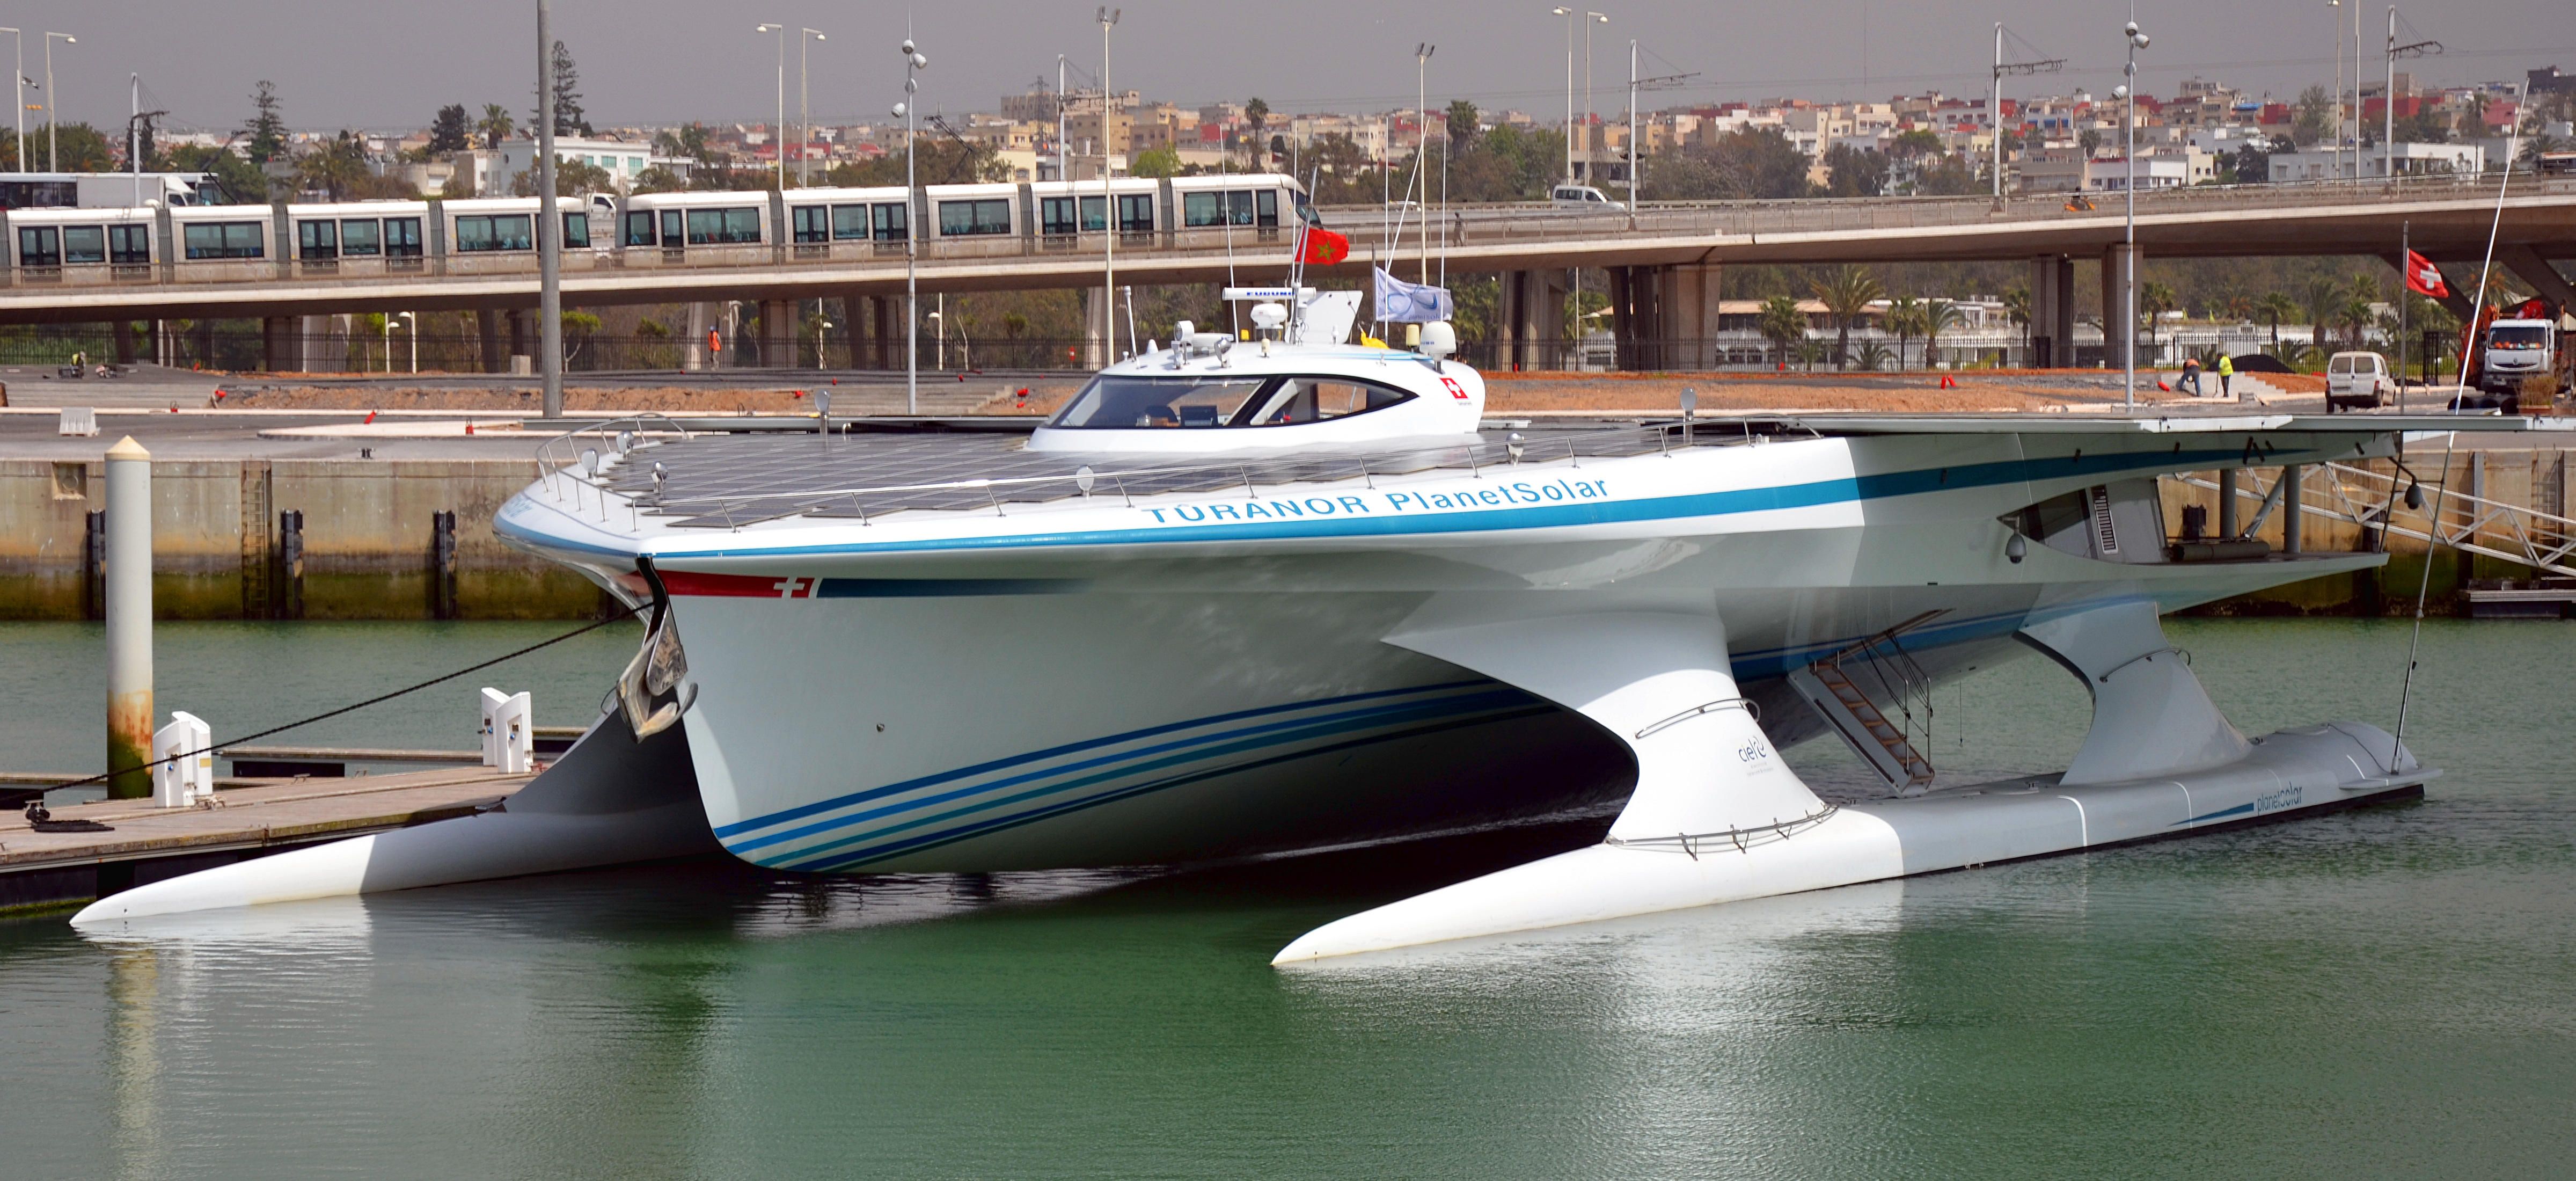 Duffy Electric Boats Co Huntington Beach Manta